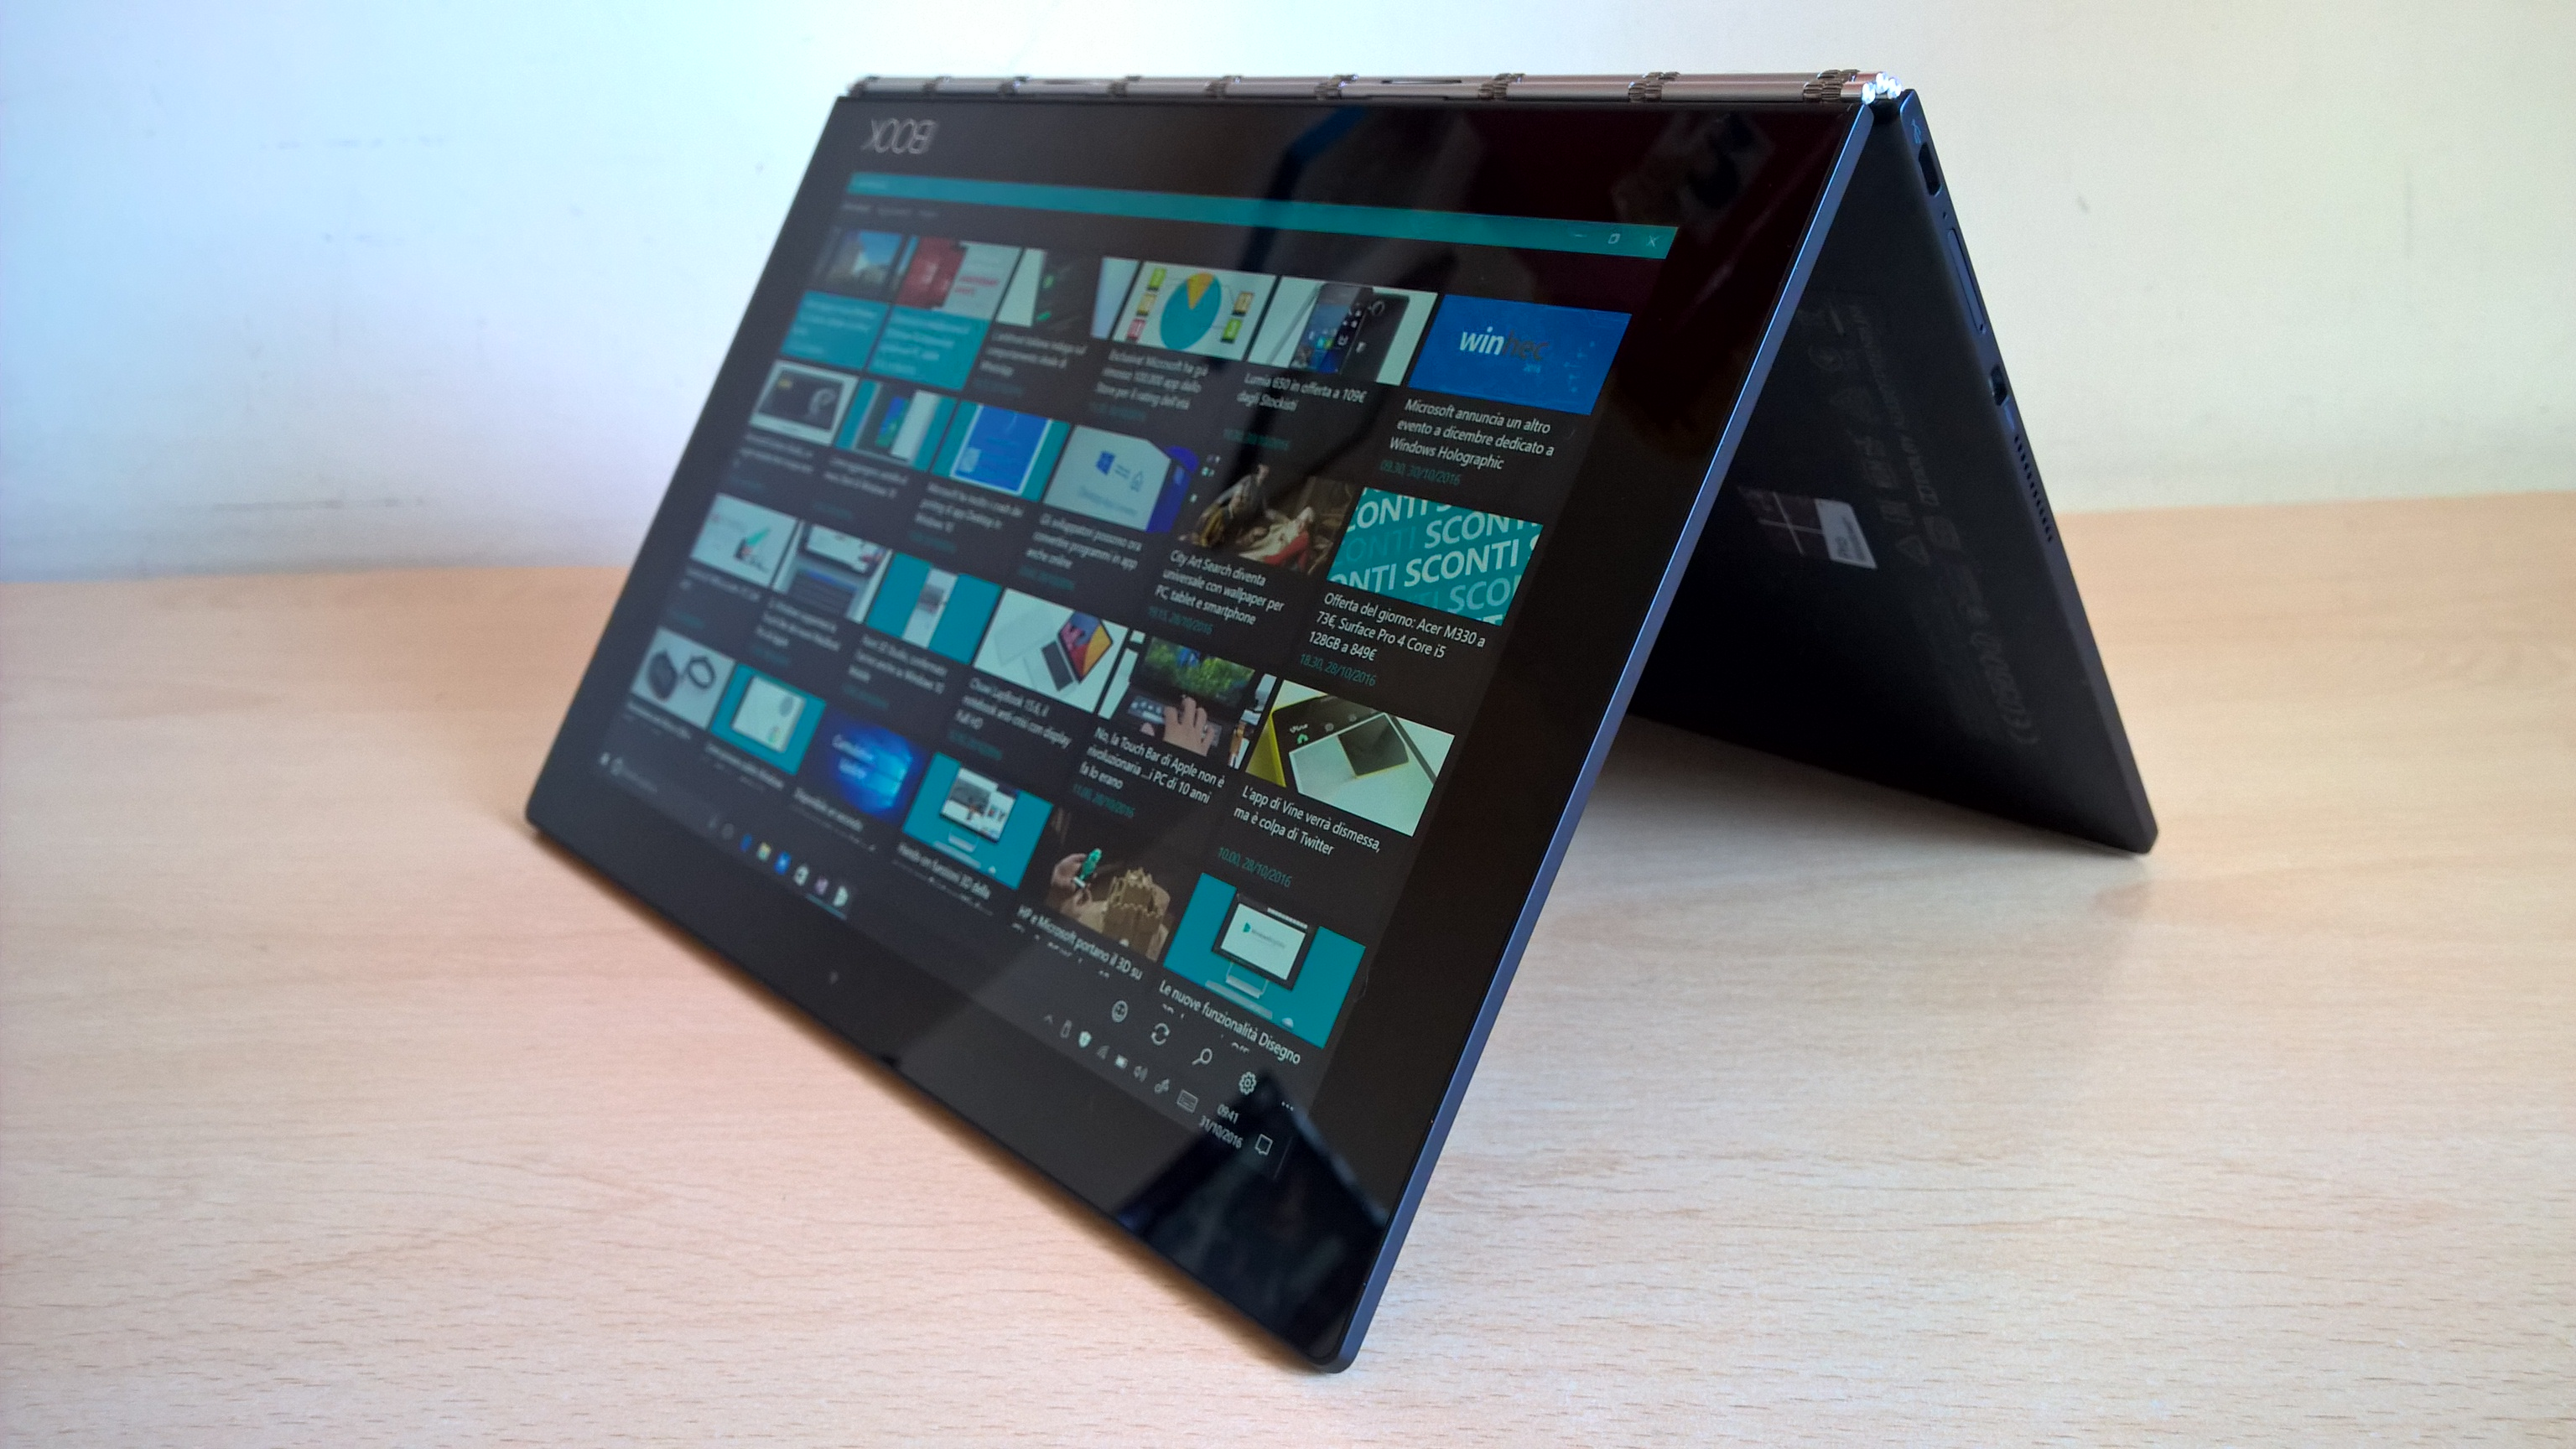 lenovo-yoga-book-4-in-1